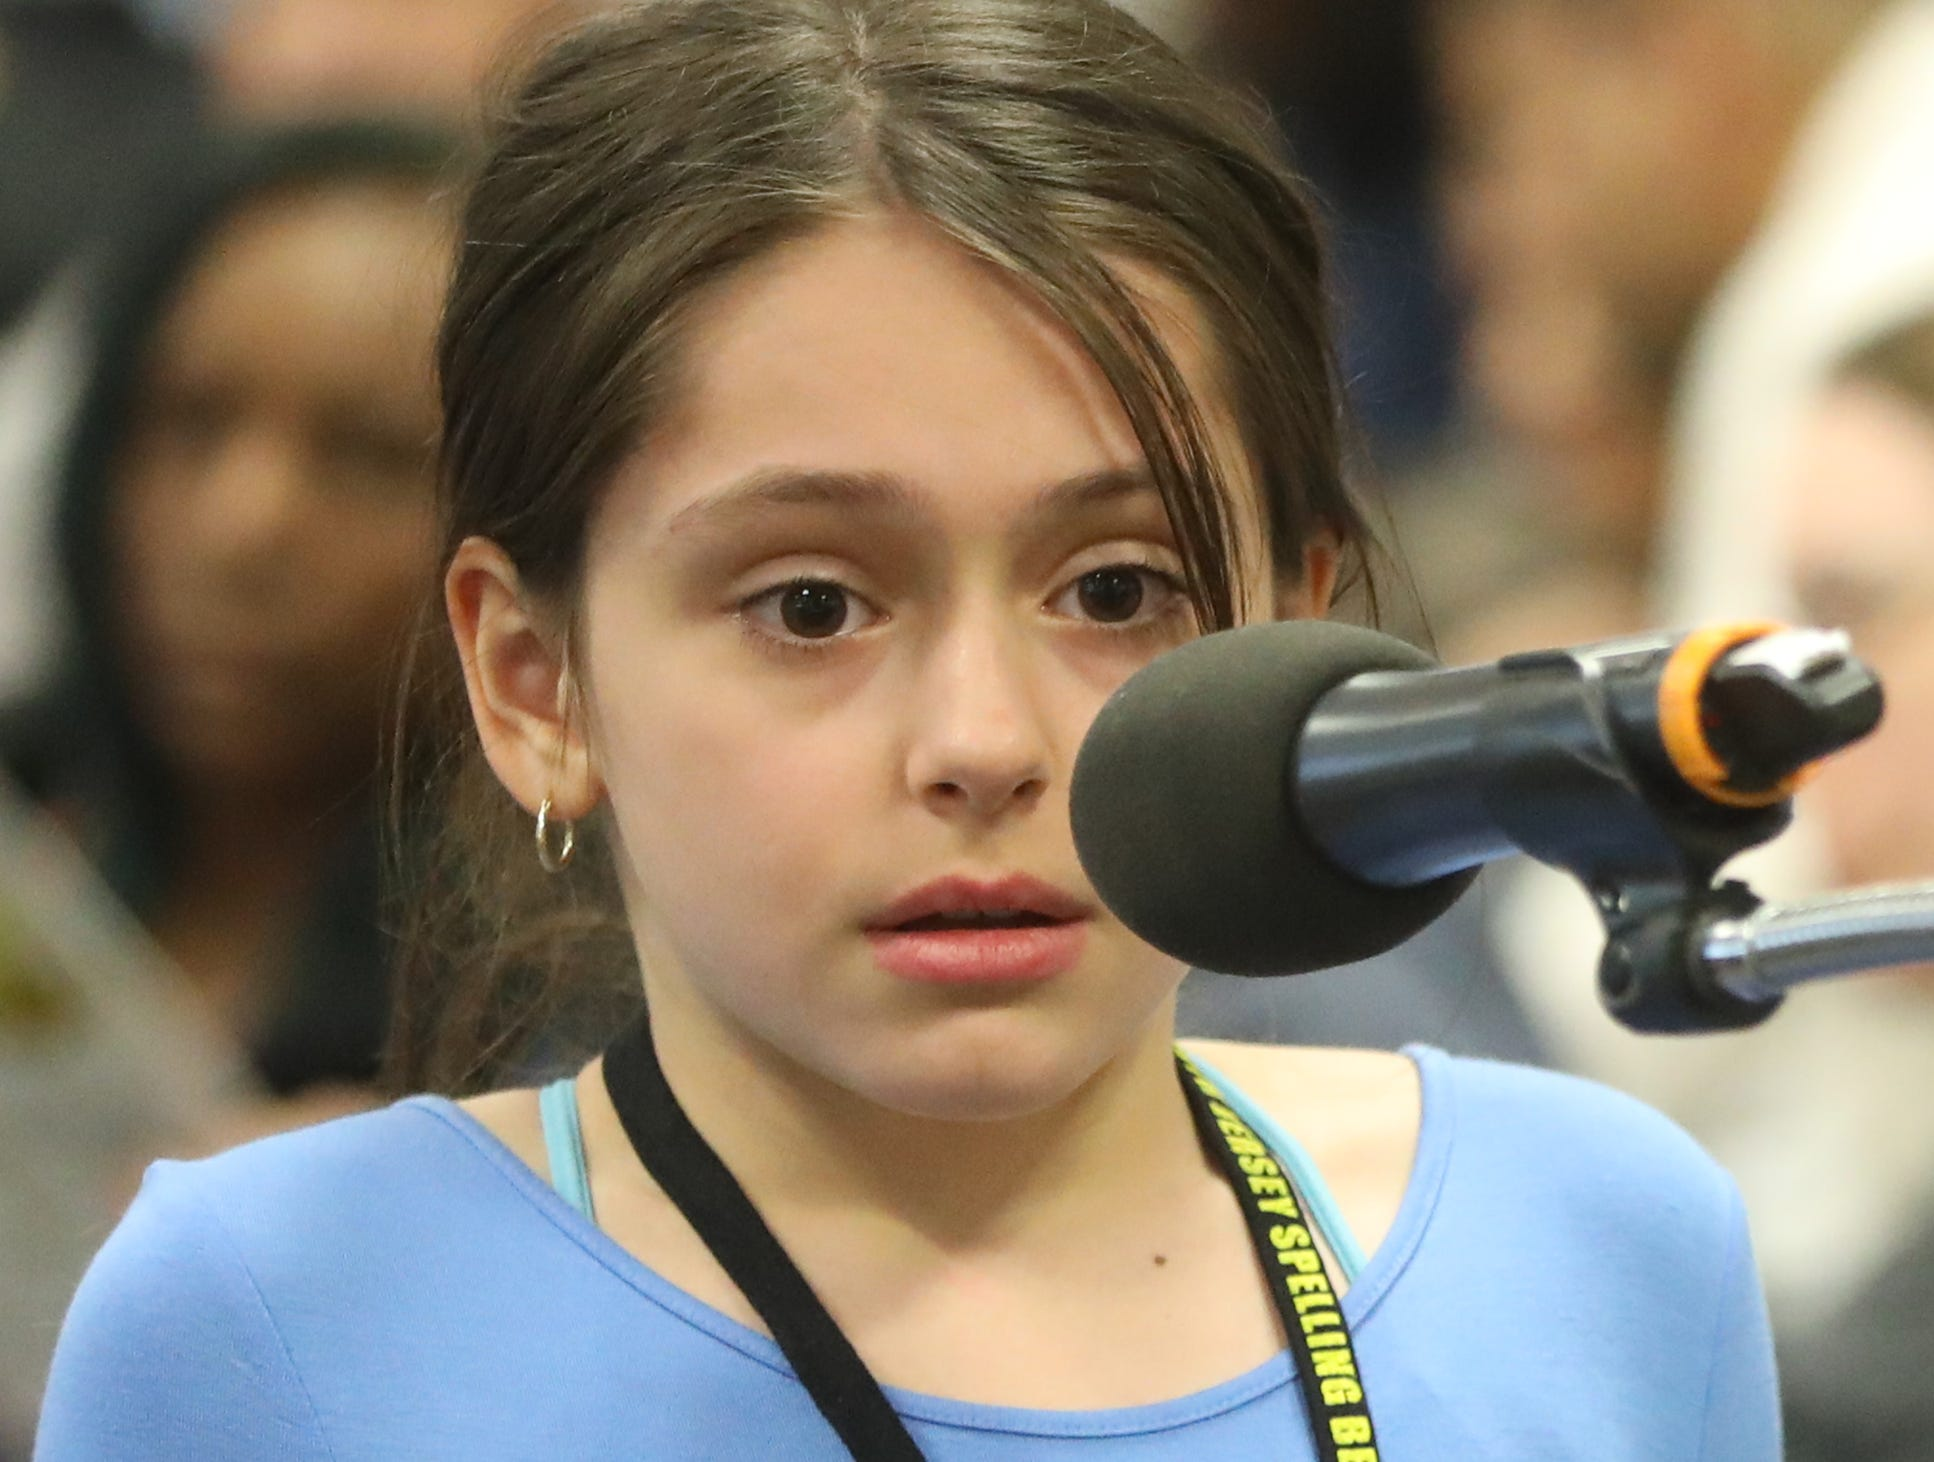 Nicolette Sigalos, of Wyckoff, competes in the first round of the 2019 North Jersey Spelling Bee, in Paramus. Thursday, March 14, 2019